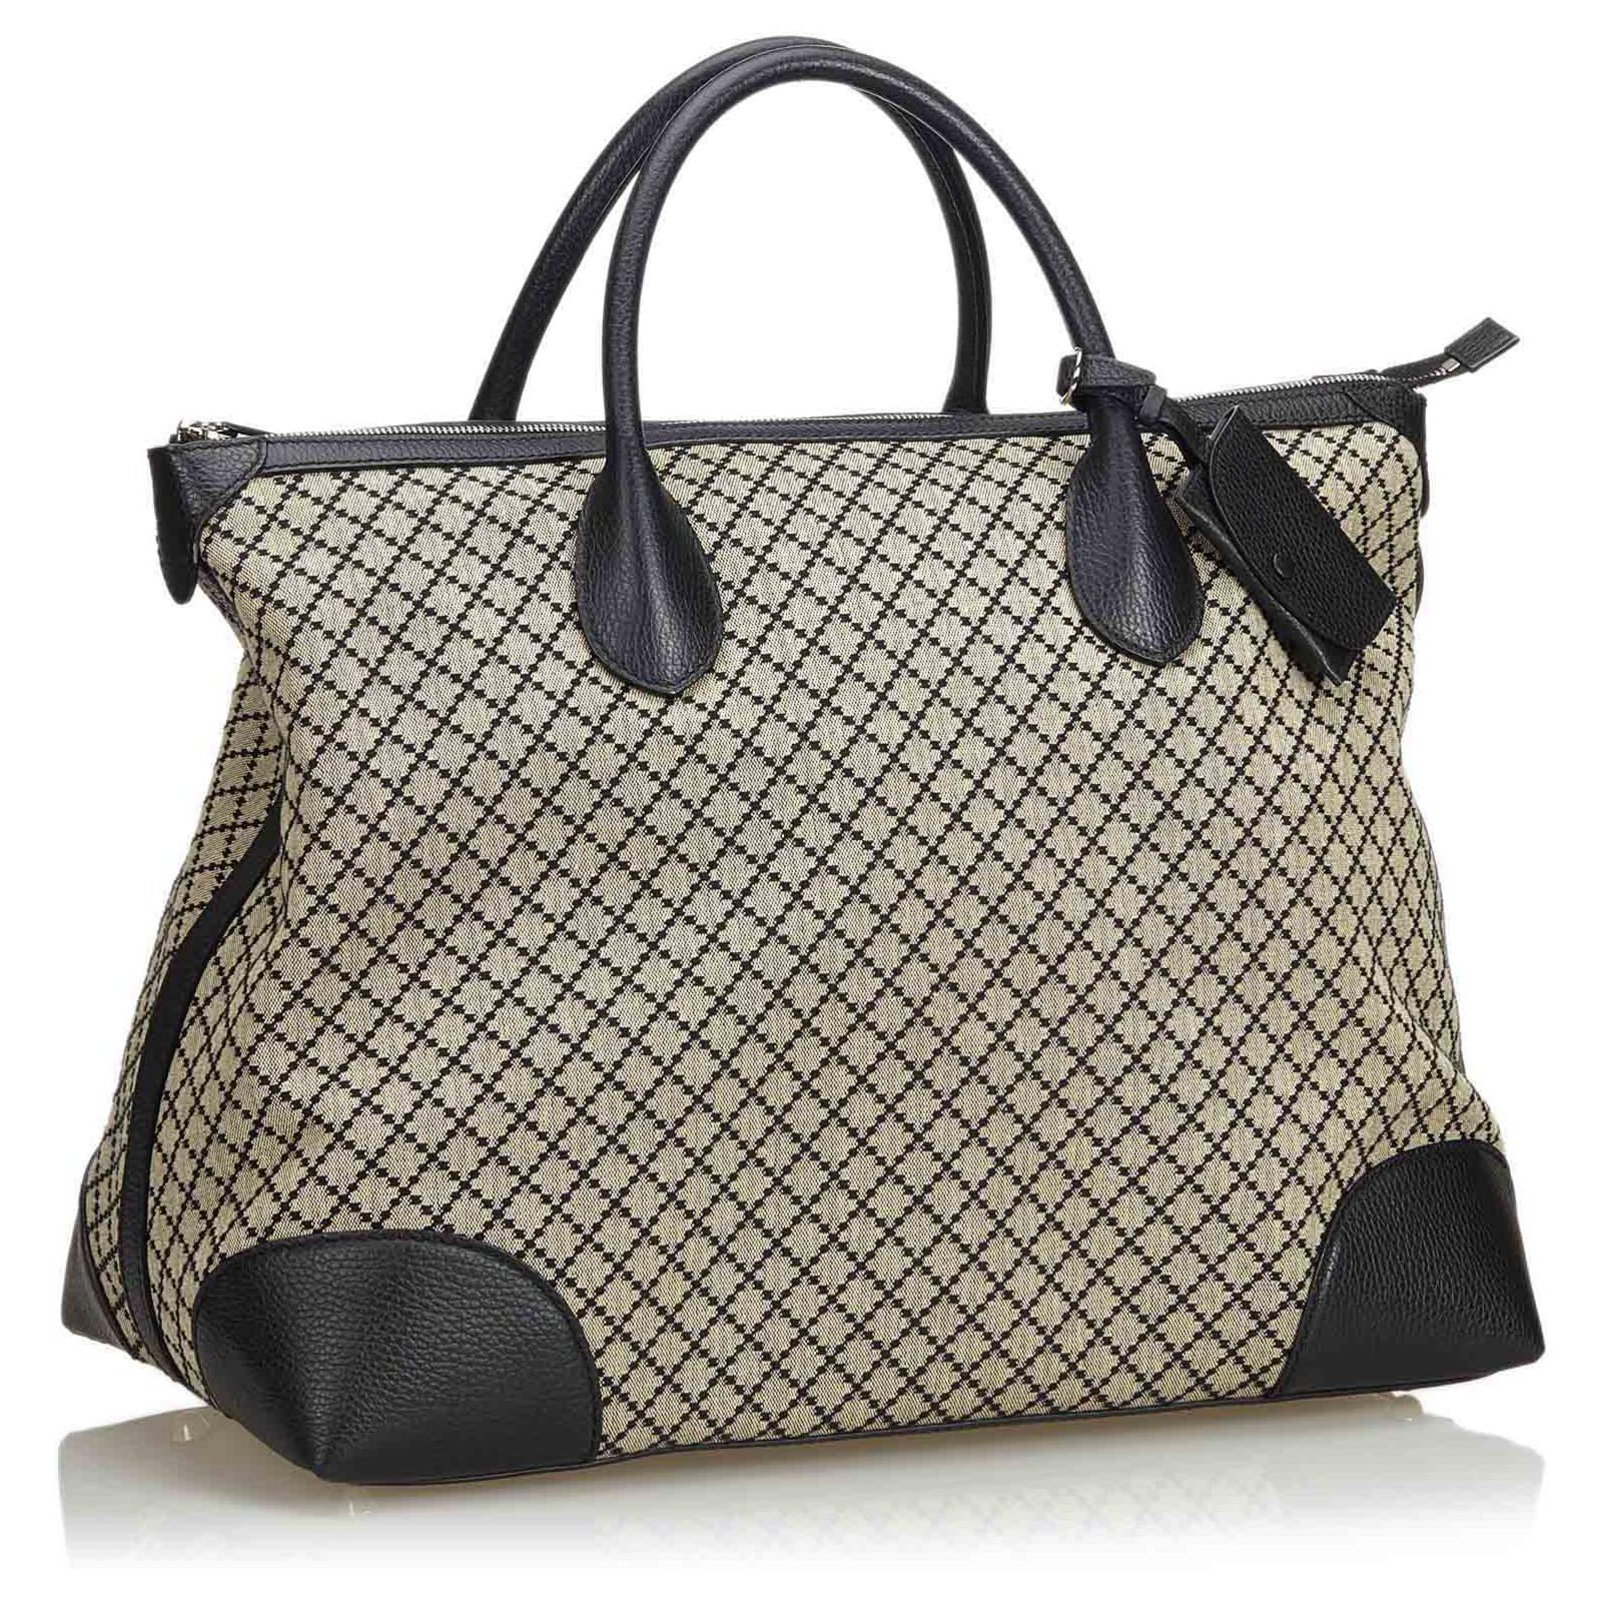 73be850ff359 Gucci Diamante Jacquard Travel Bag Travel bag Leather,Other,Cloth ...